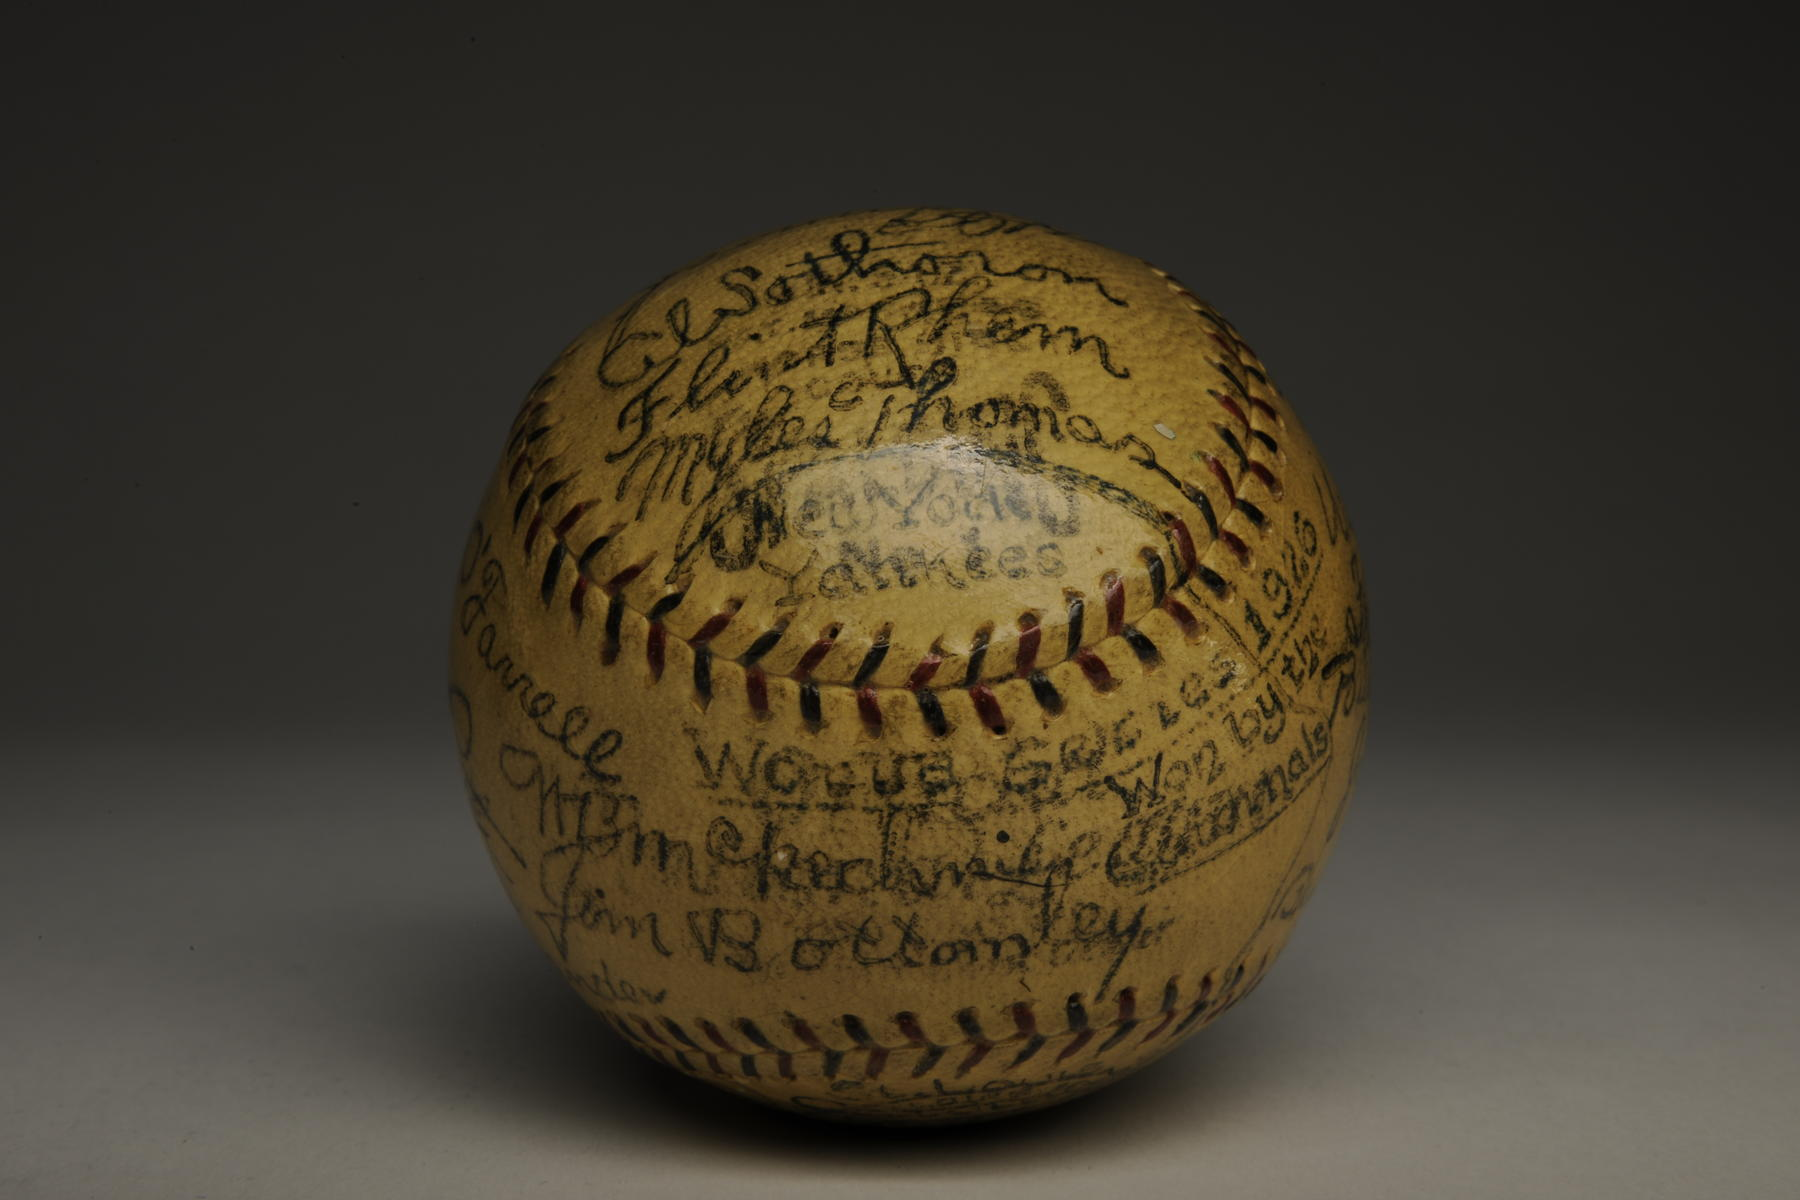 Baseball signed by players from both the New York Yankees and St. Louis Cardinals that participated in the 1926 World Series. B-174-55 (Milo Stewart Jr. / National Baseball Hall of Fame)